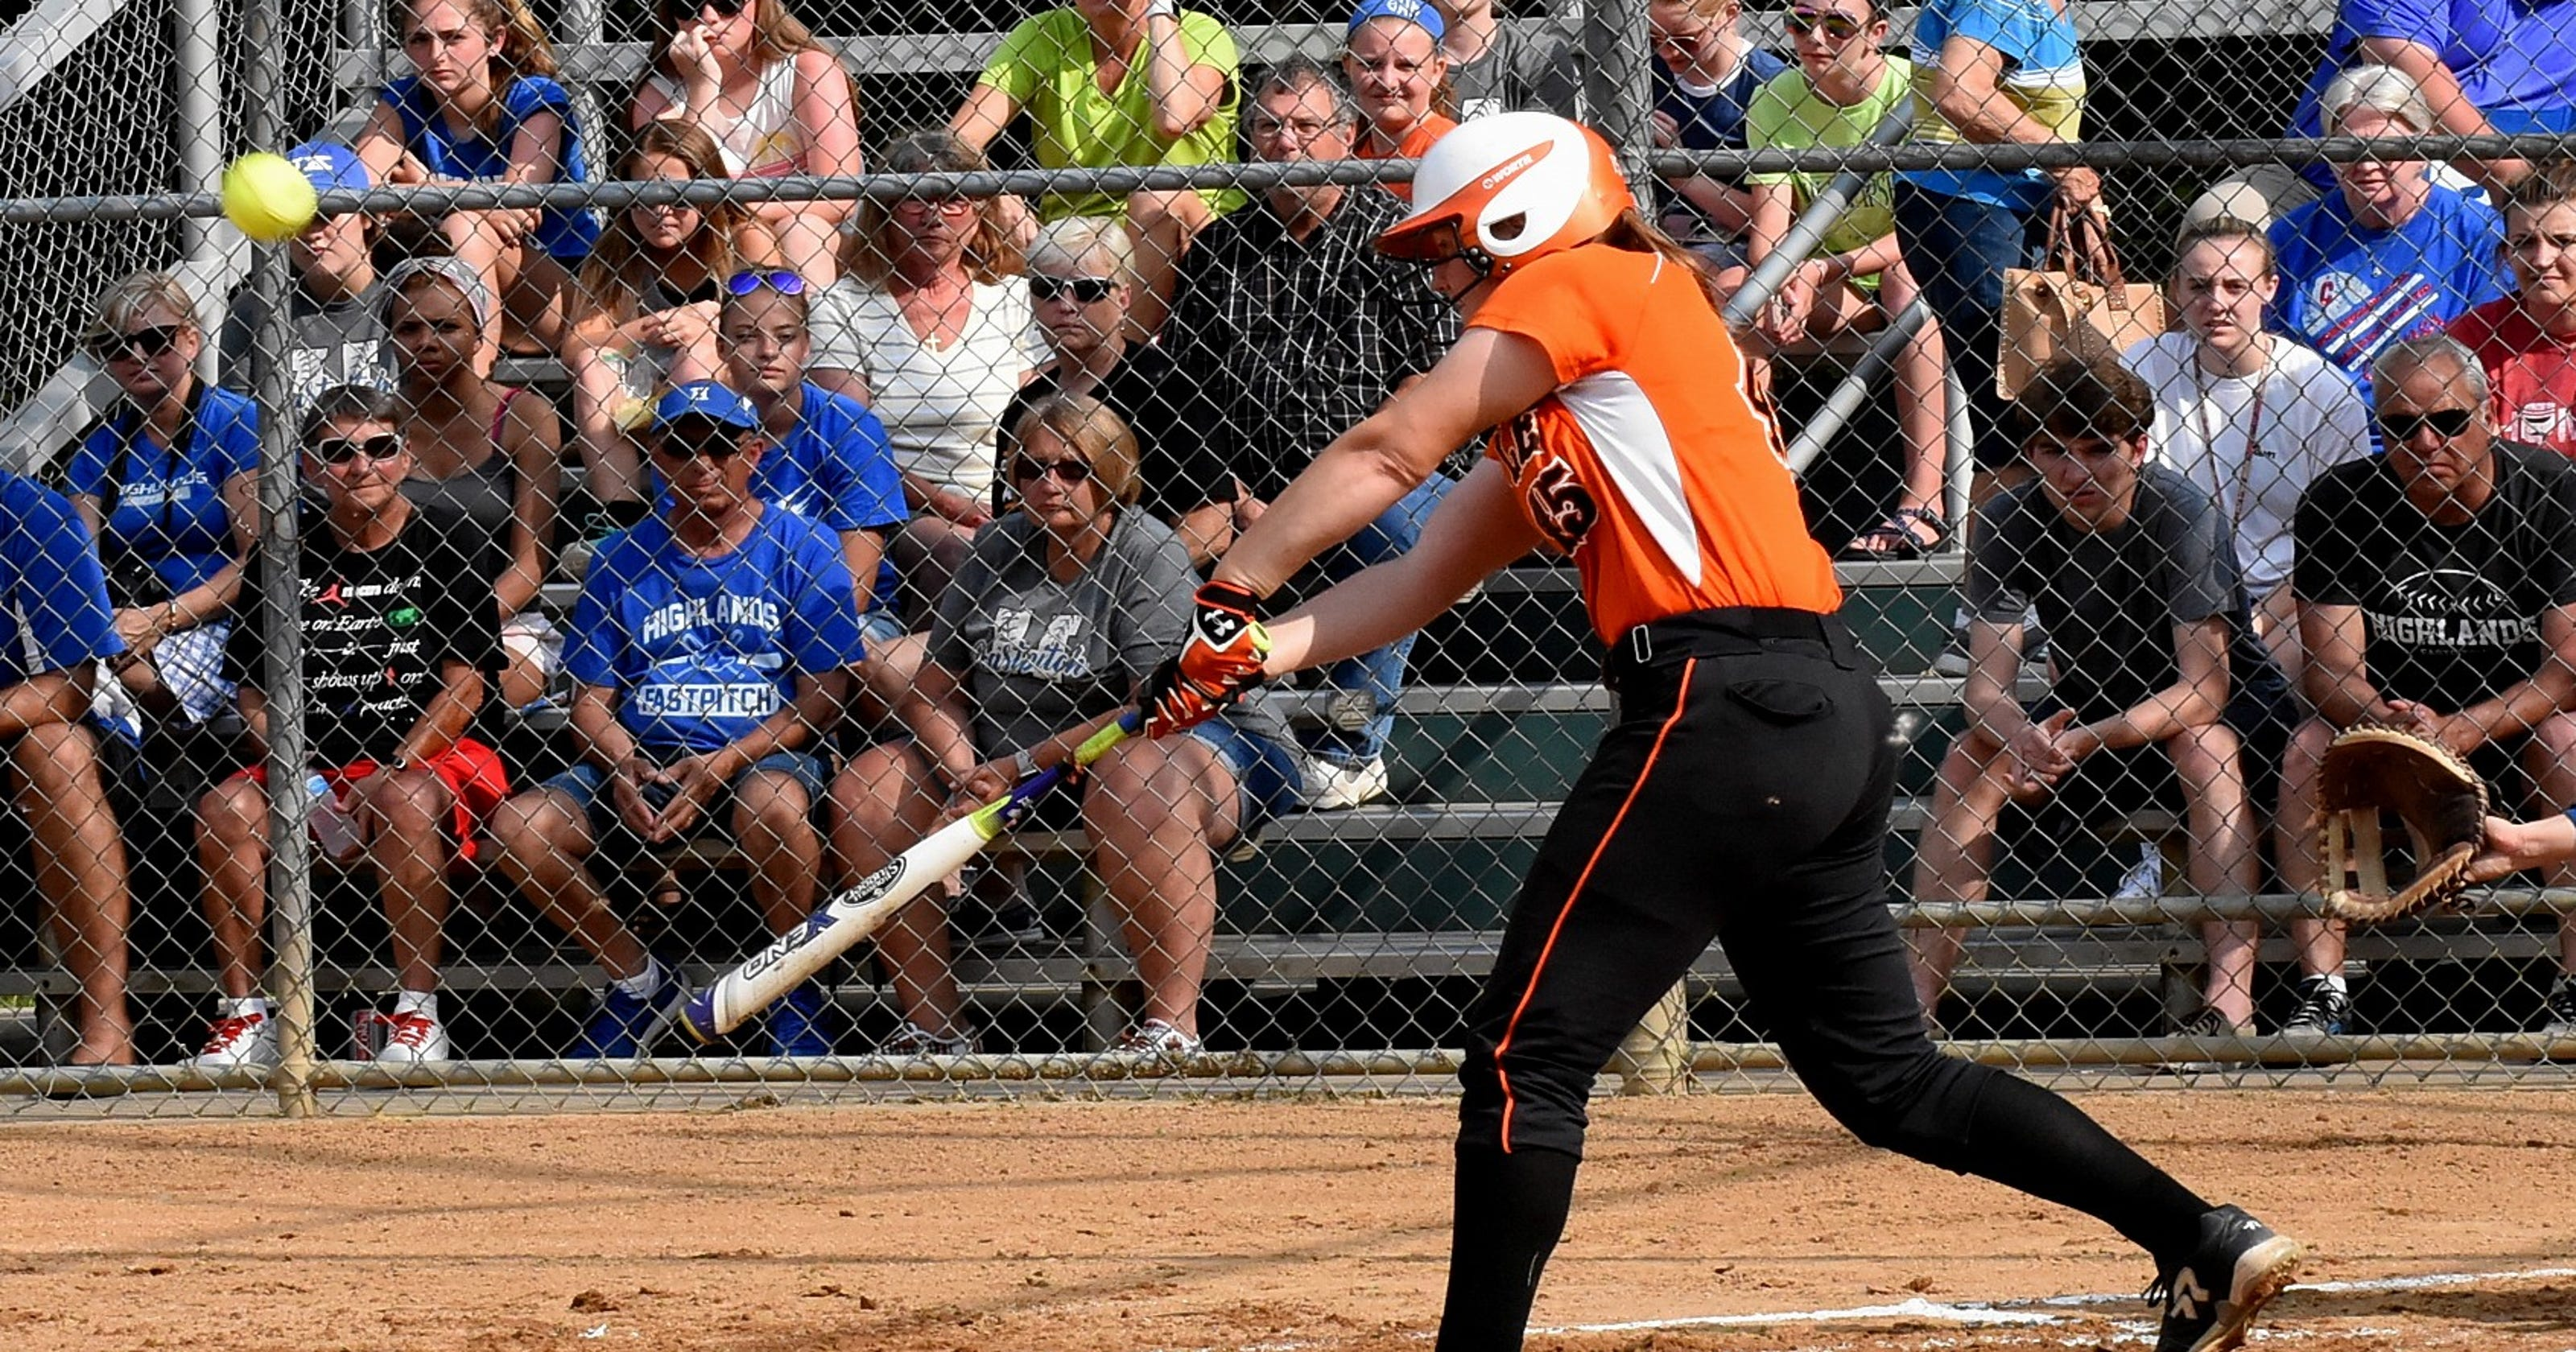 Ryle softball loses in walkoff heartbreak in state tournament